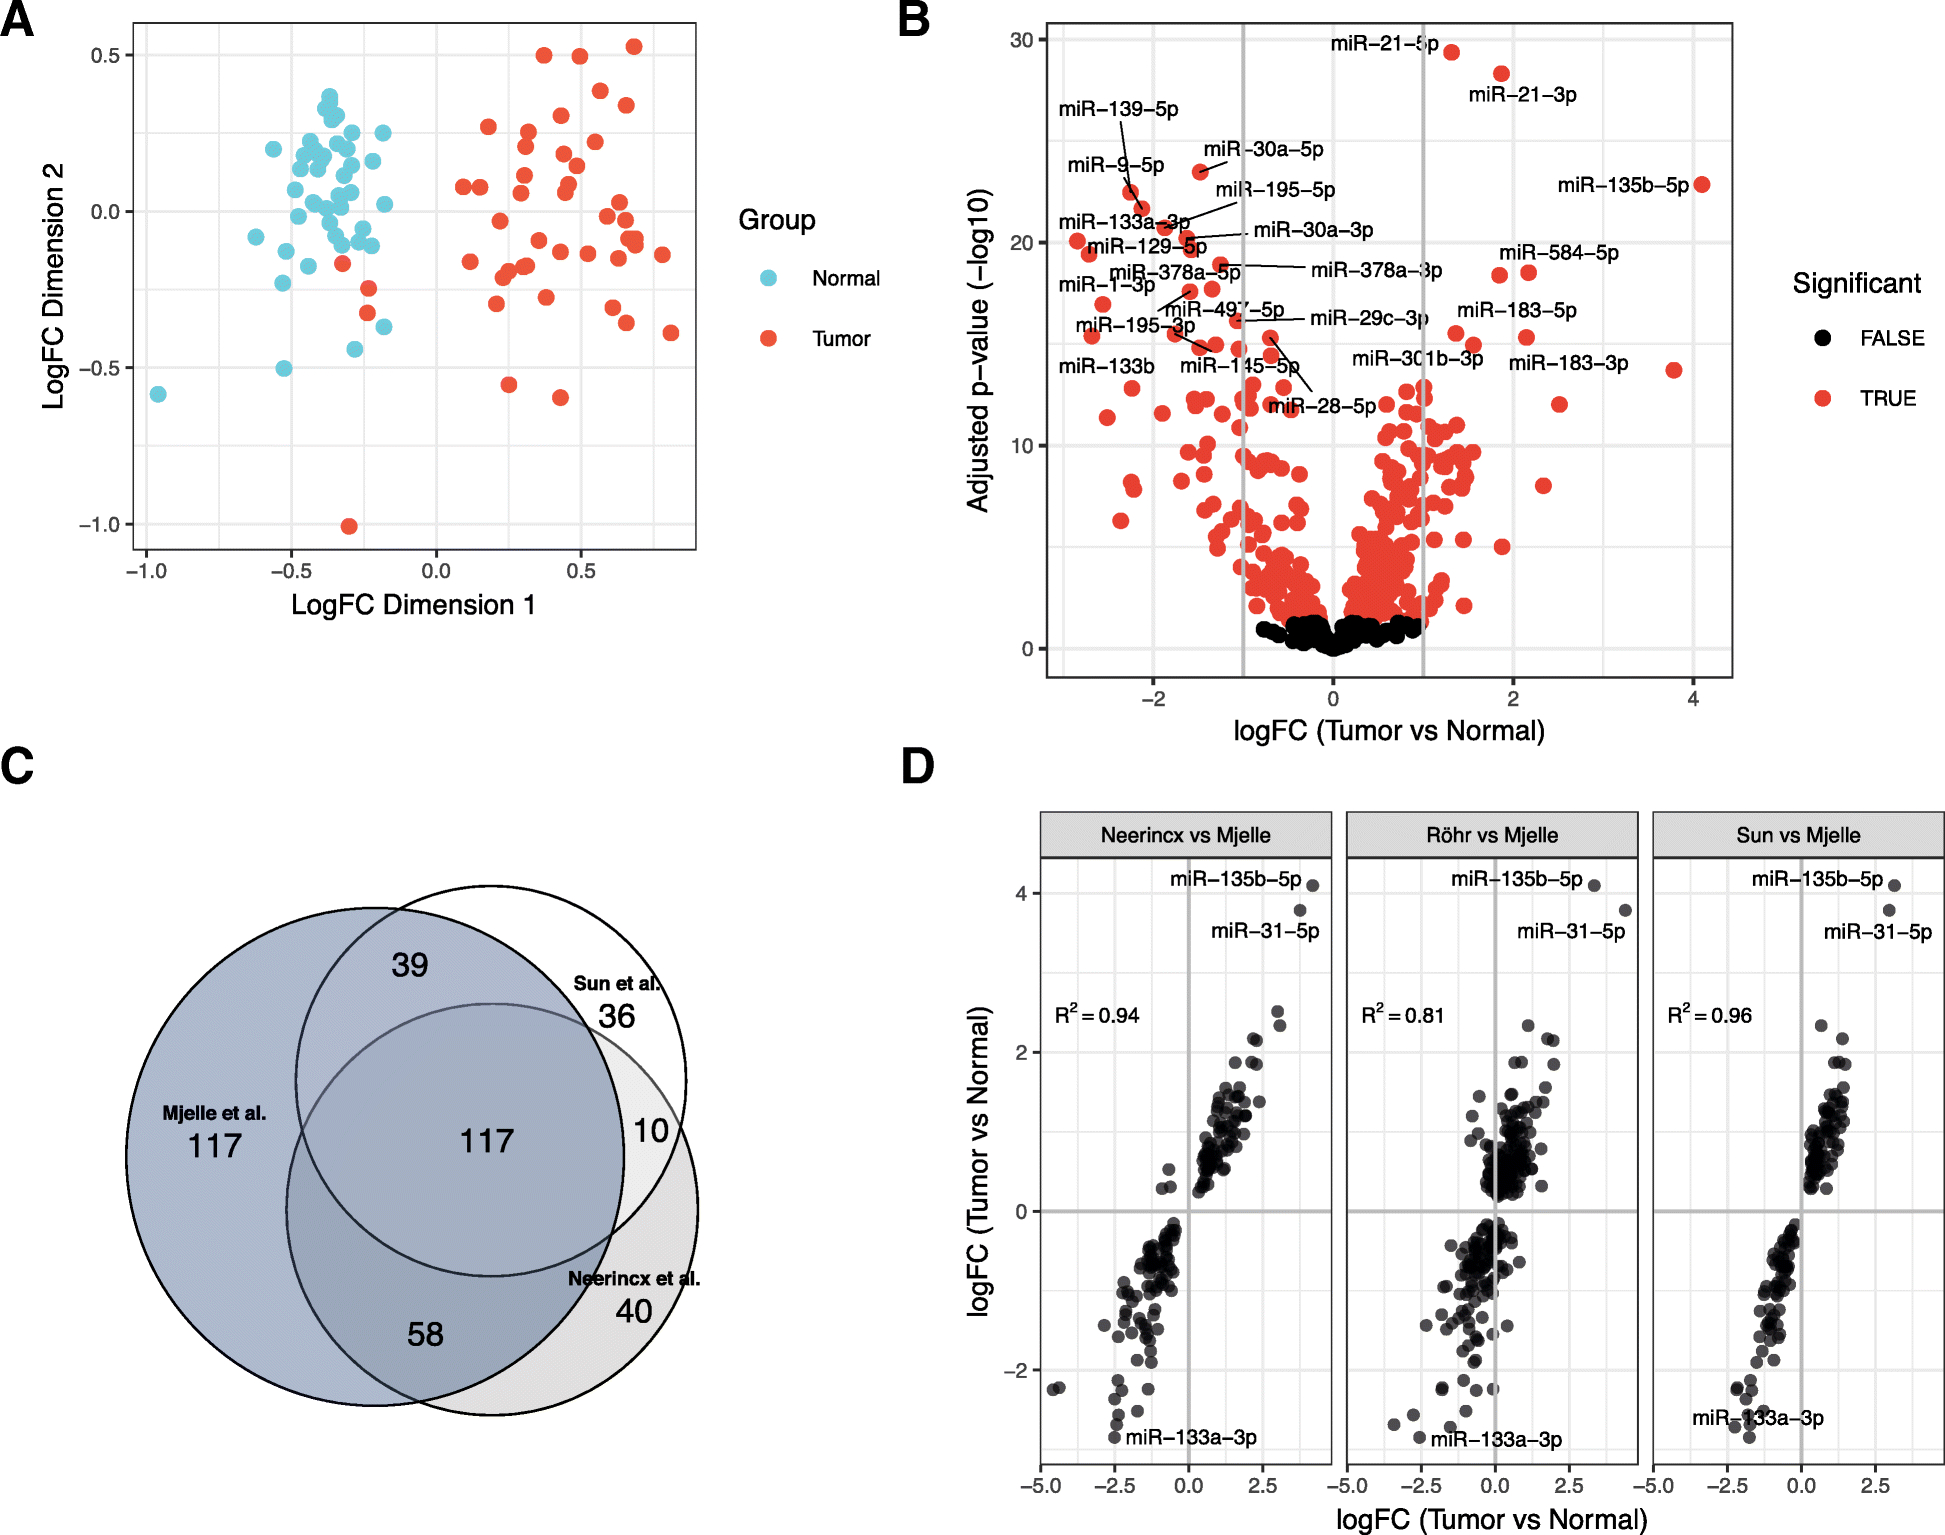 Bacteria And Virus Venn Diagram Small Rna Expression From Viruses Bacteria And Human Mirnas In